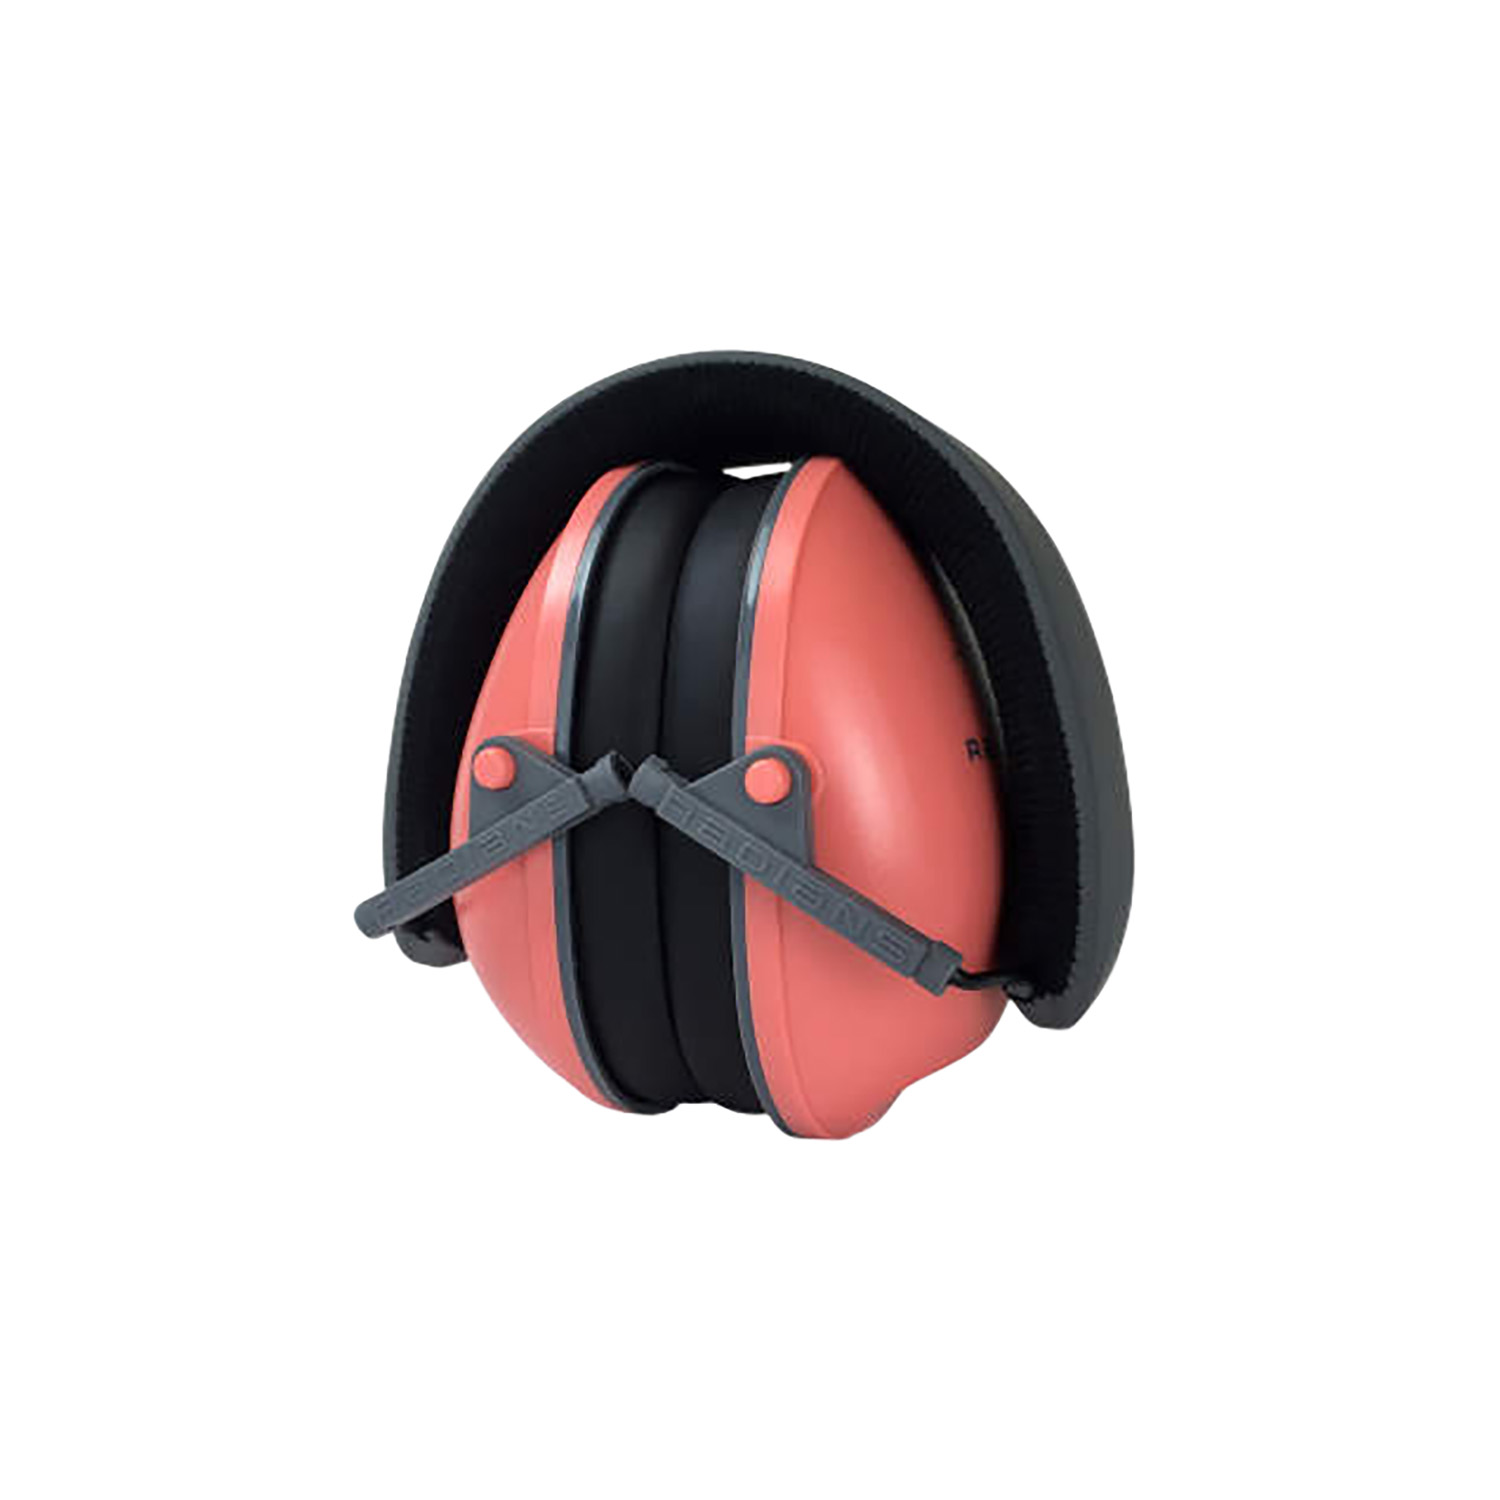 Radians LS0830CS Lowset Passive Muff 21 dB Over the Head Coral Ear Cups with Black Headband for Women 1 Pair